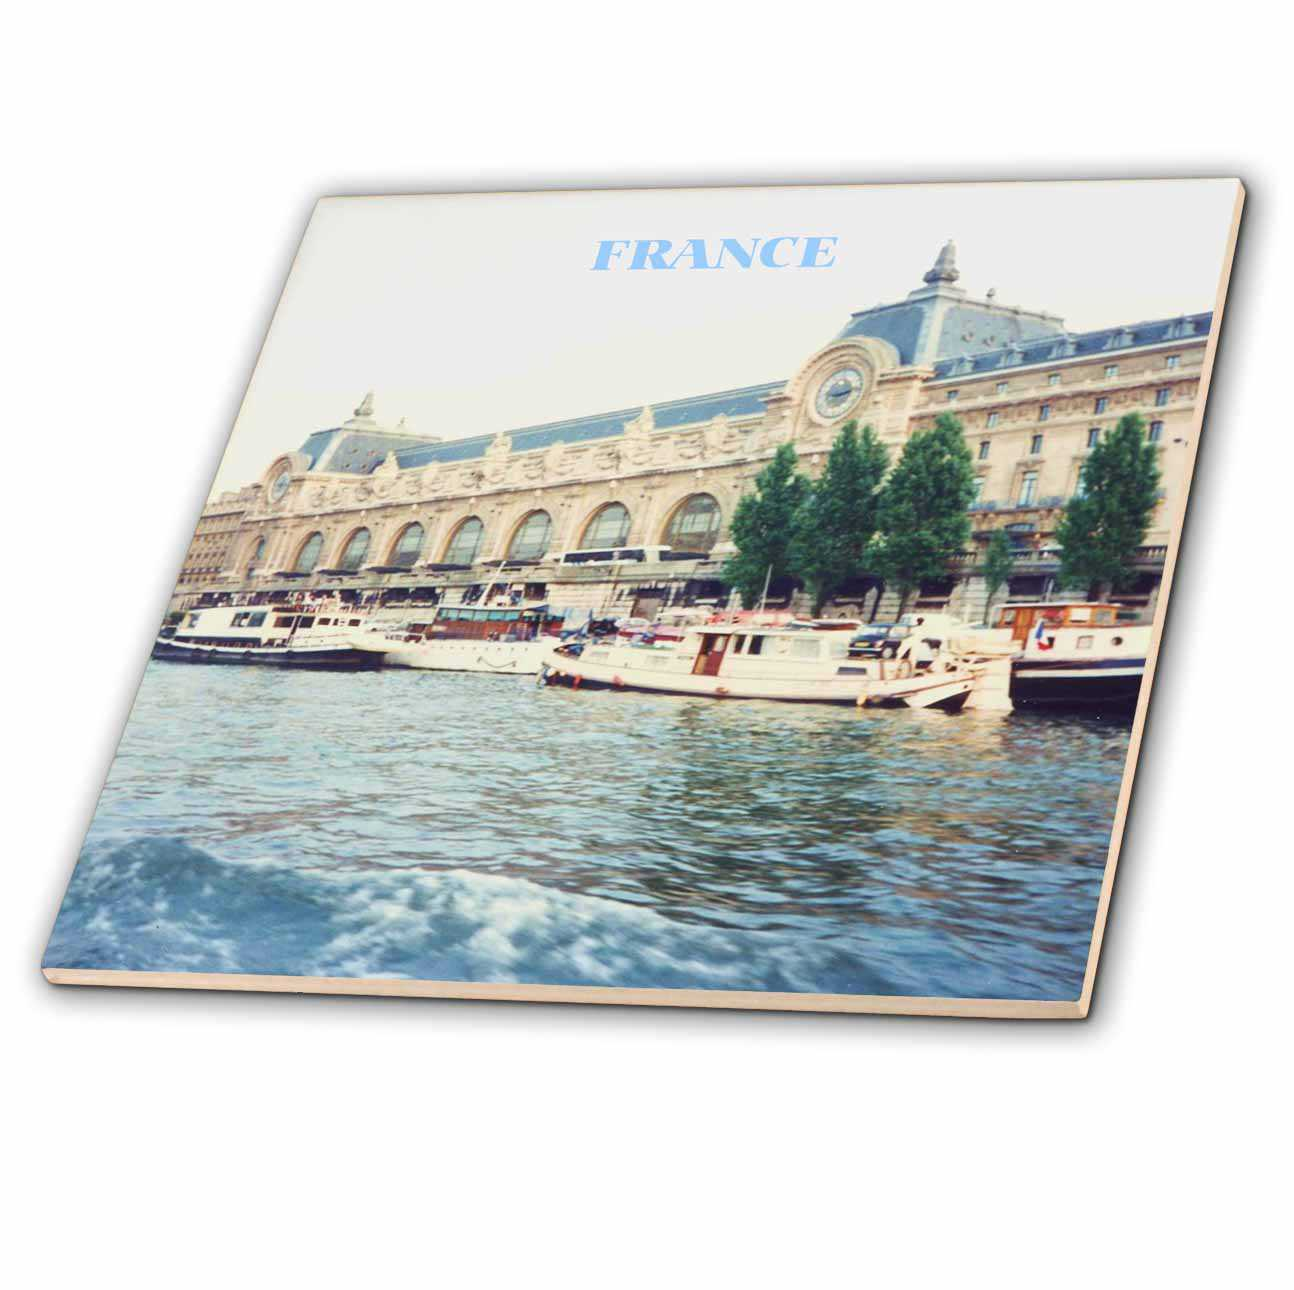 3dRose Seine River France - Ceramic Tile, 6-inch